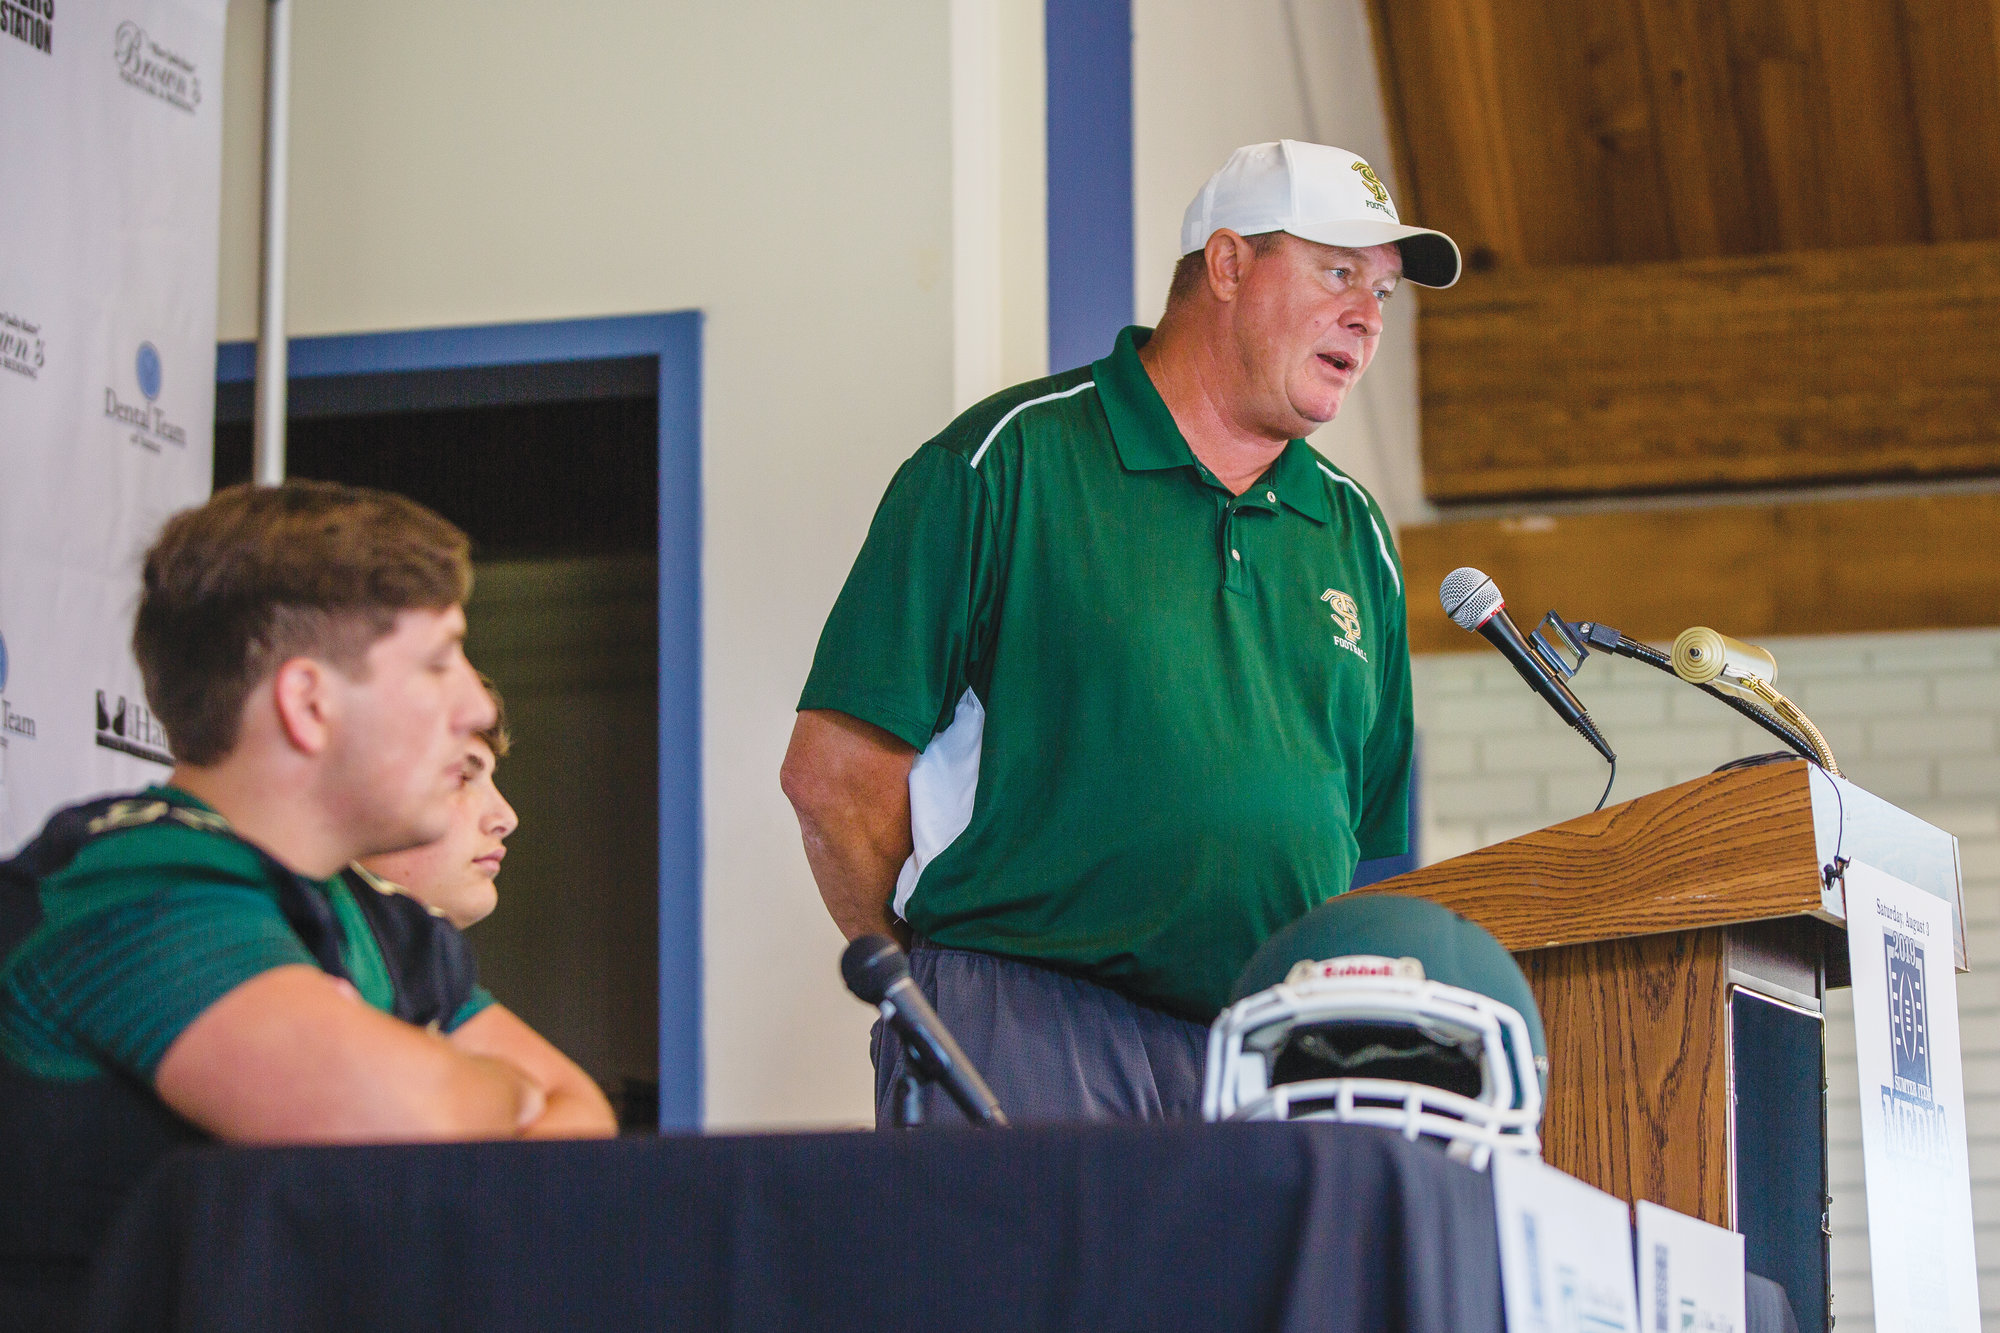 Randy Stogner, standing, talks at the 2019 Sumter Item Media Day. Stogner is entering his second year as the head football coach at Thomas Sumter.